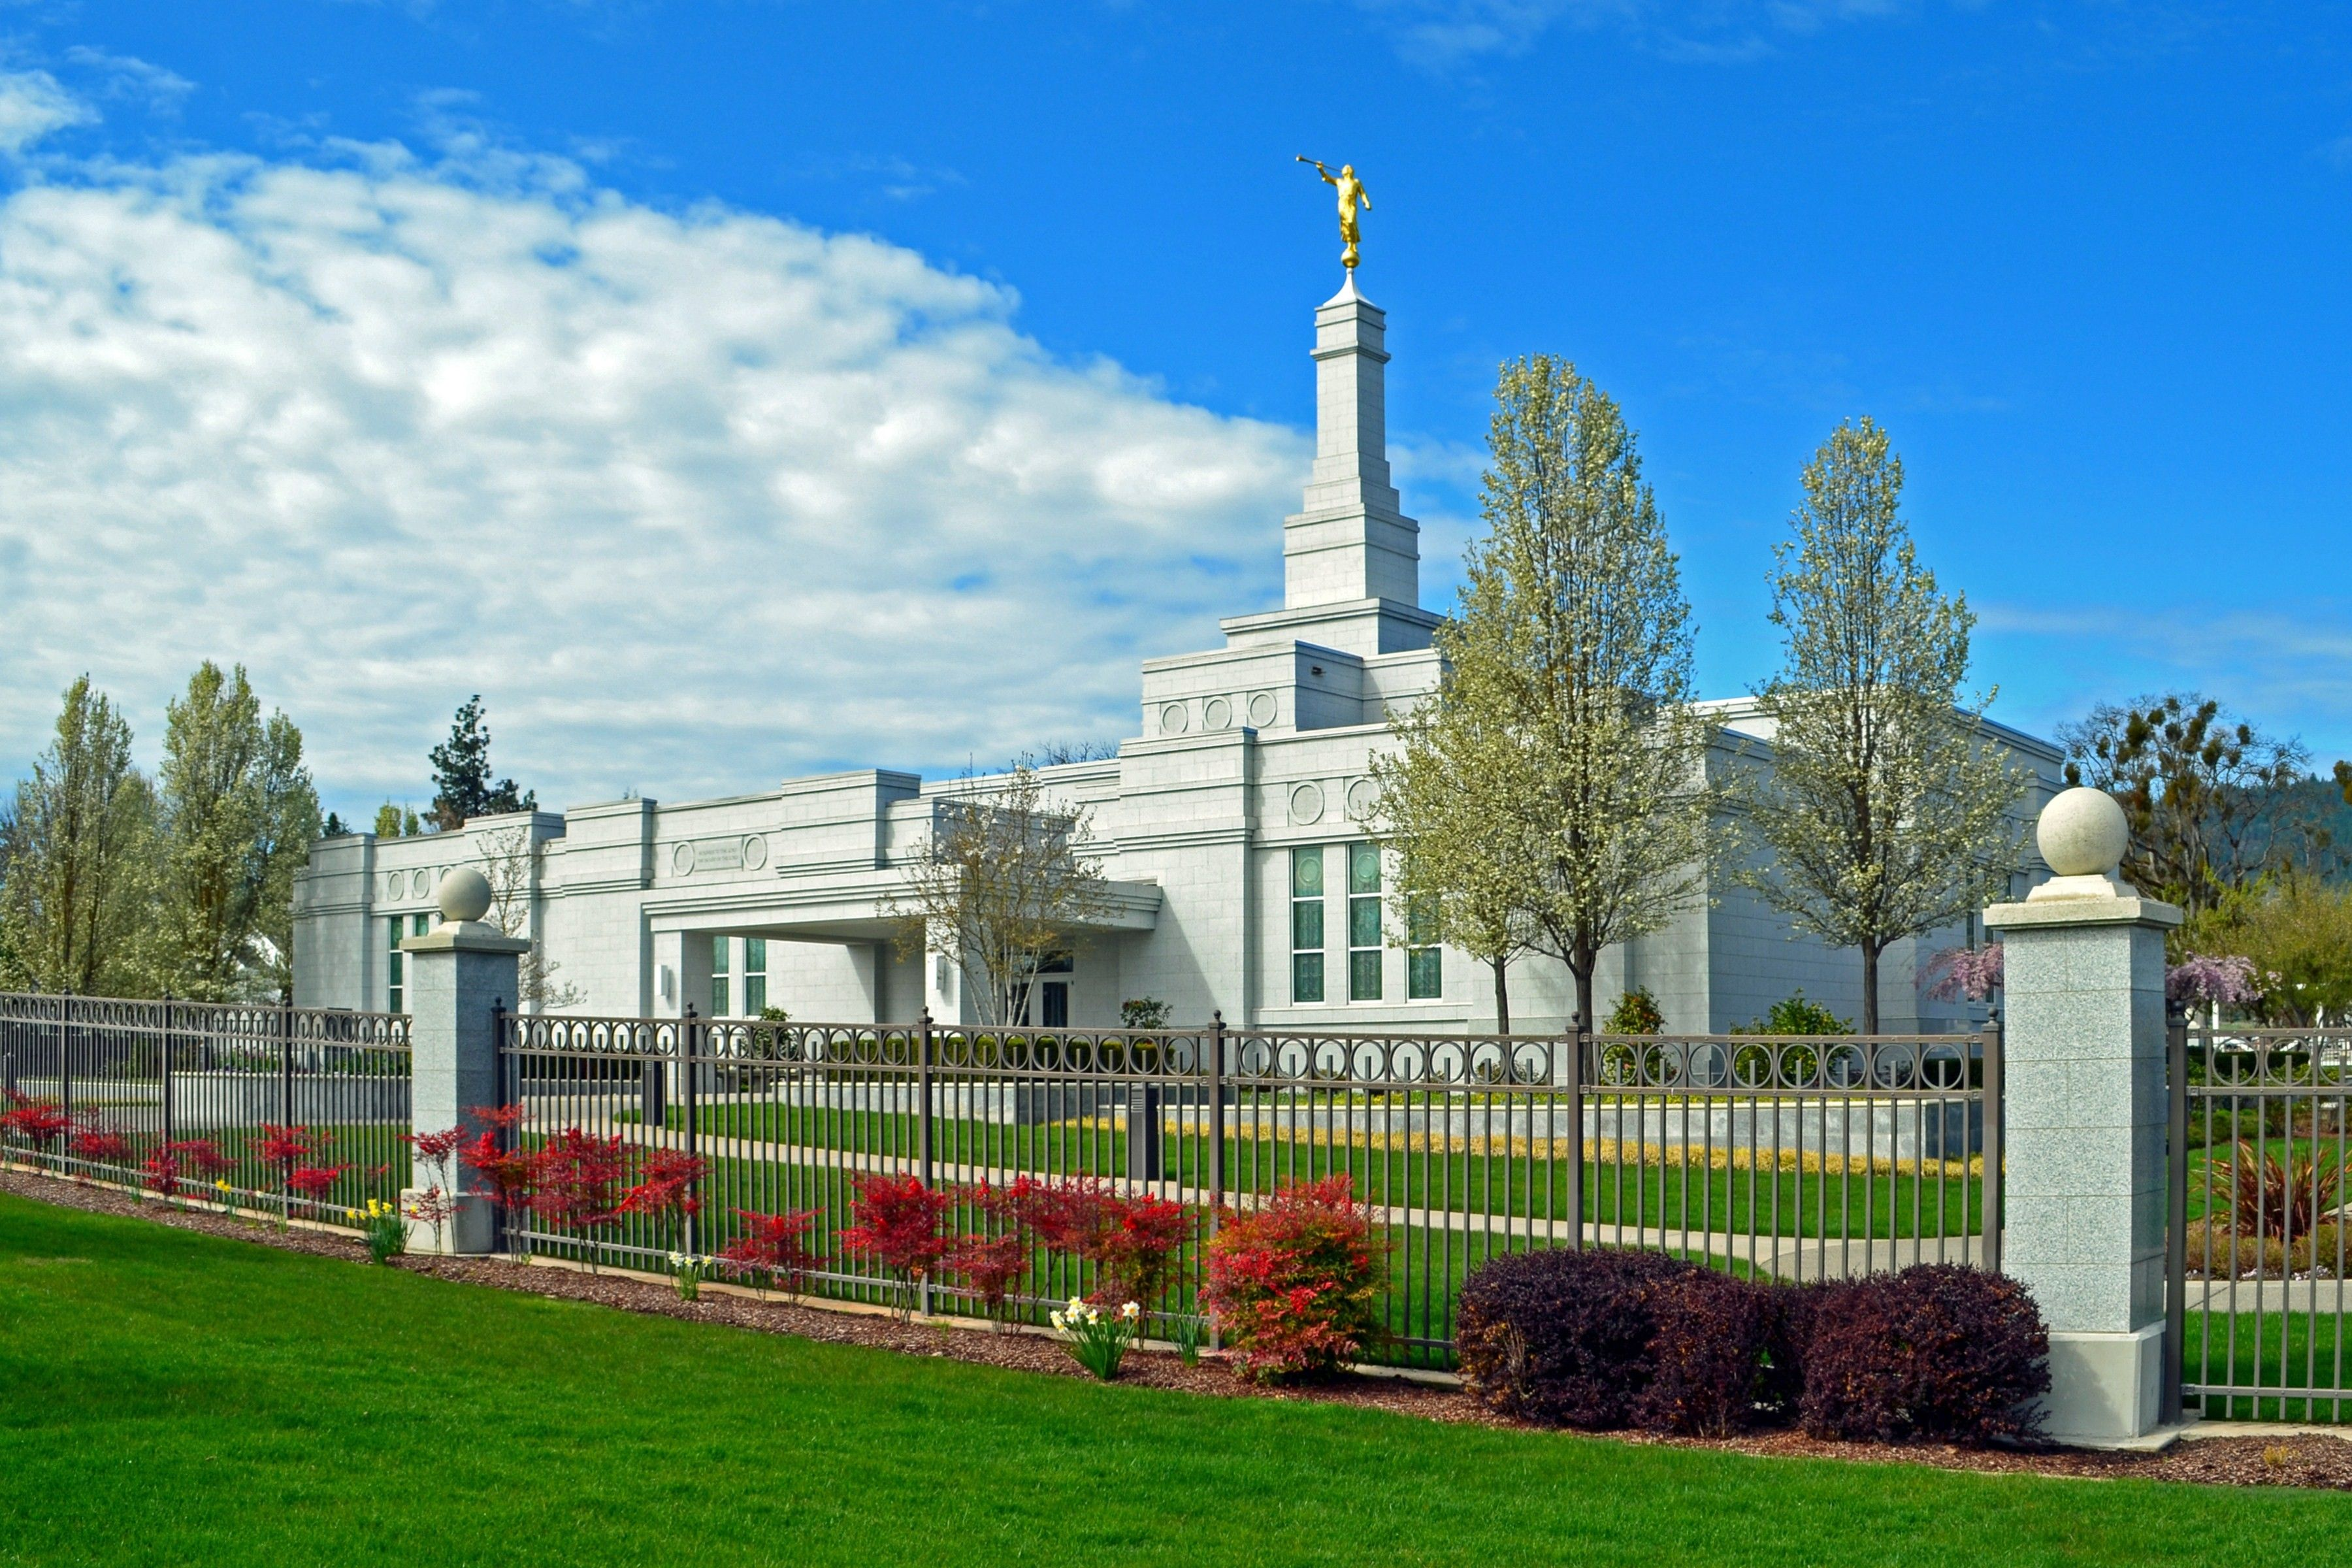 The Medford Oregon Temple, including the entrance and scenery.